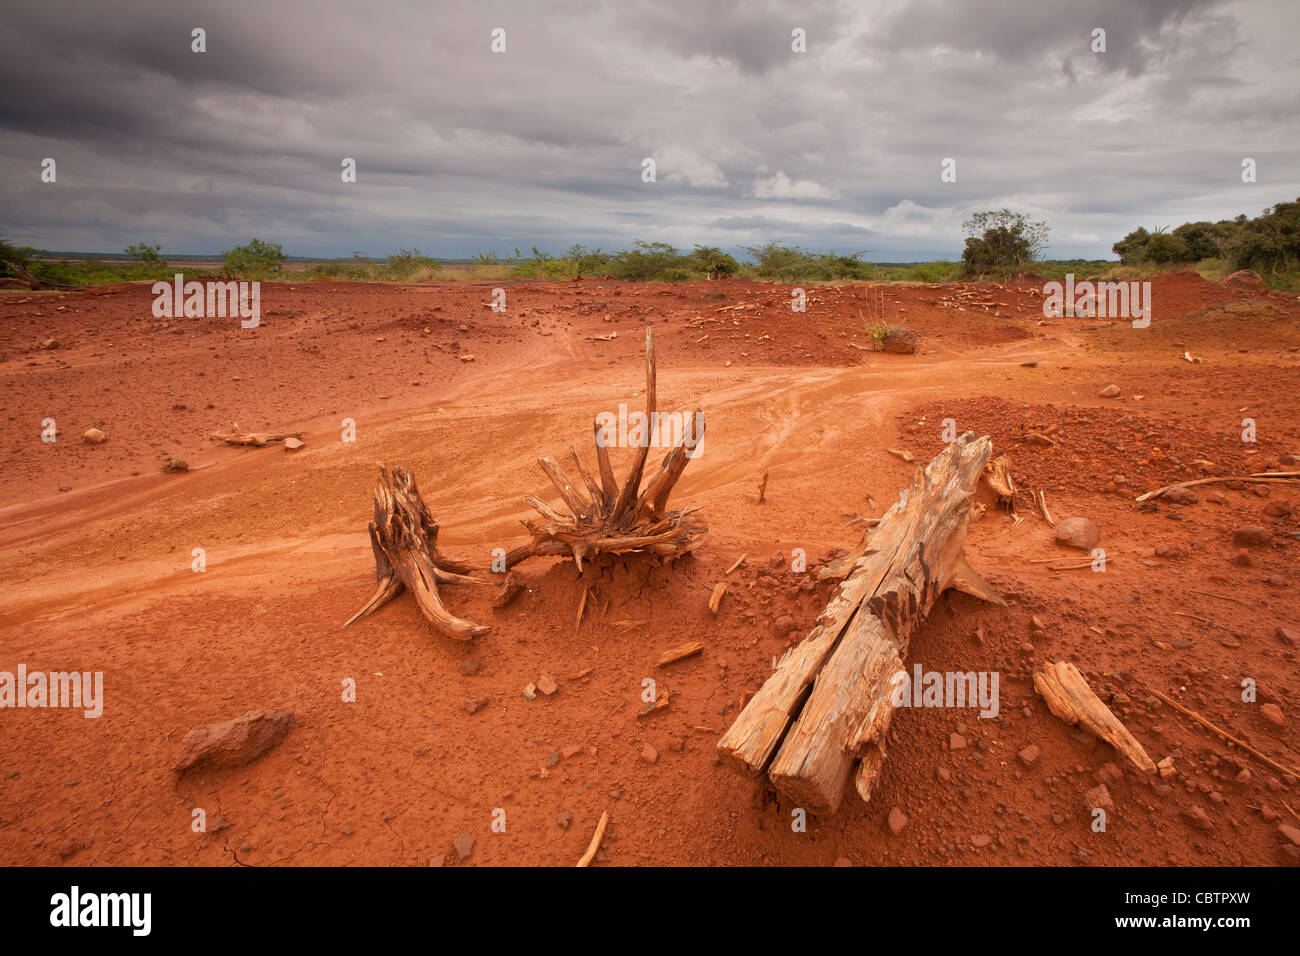 Eroded soil in Sarigua national park (desert) in Herrera province, Republic of Panama. Stock Photo